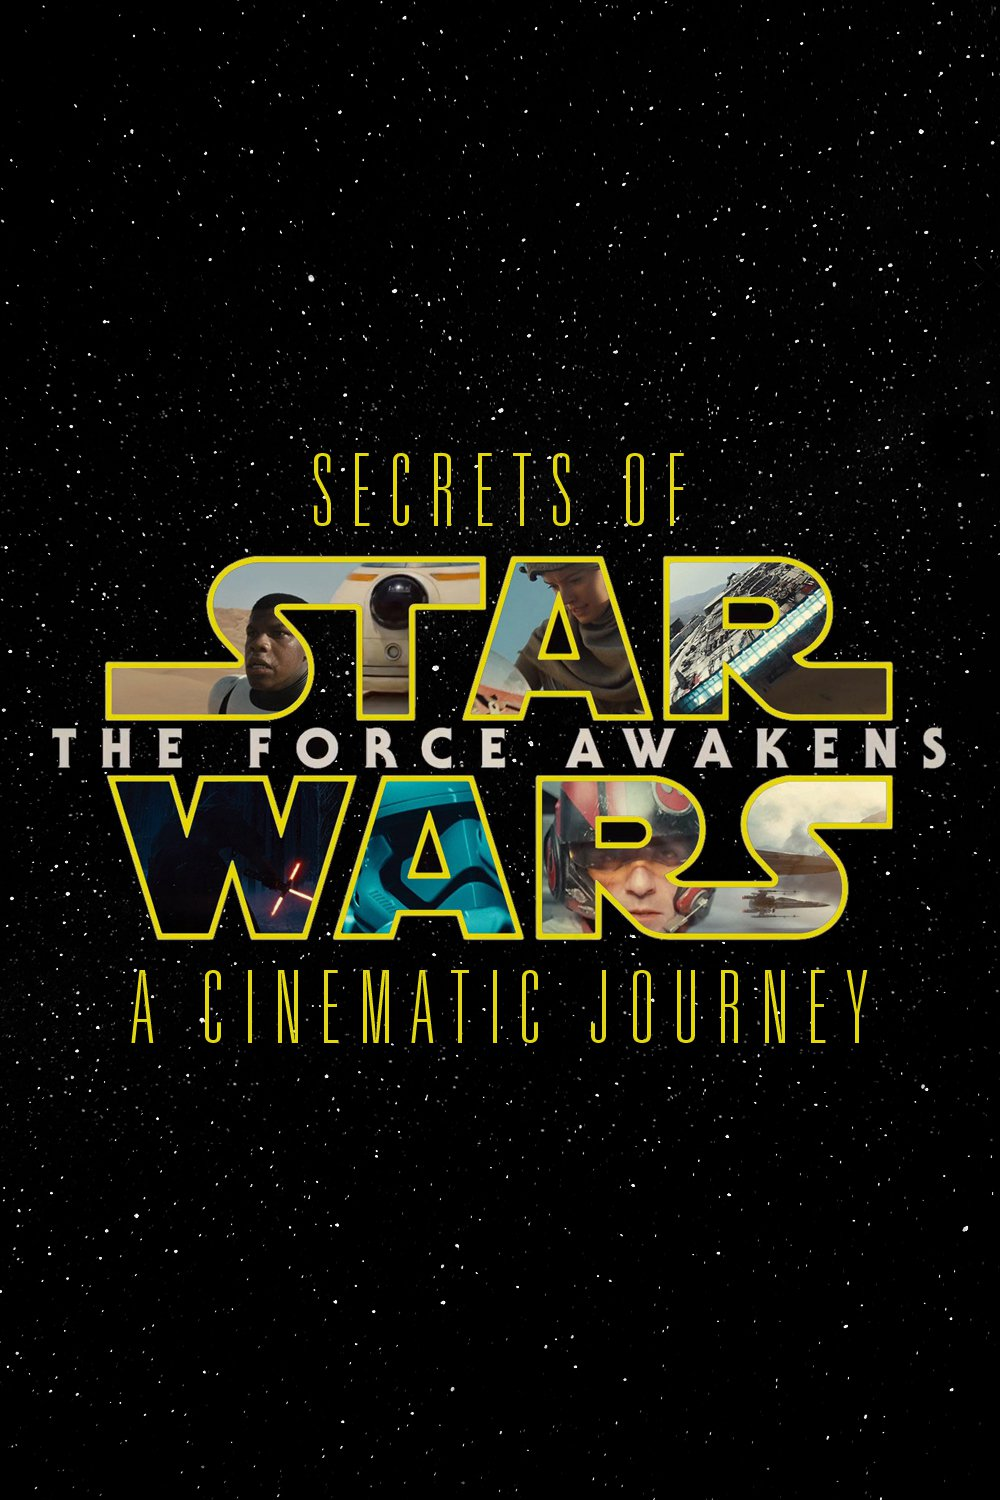 Secrets Of The Force Awakens – A Cinematic Journey